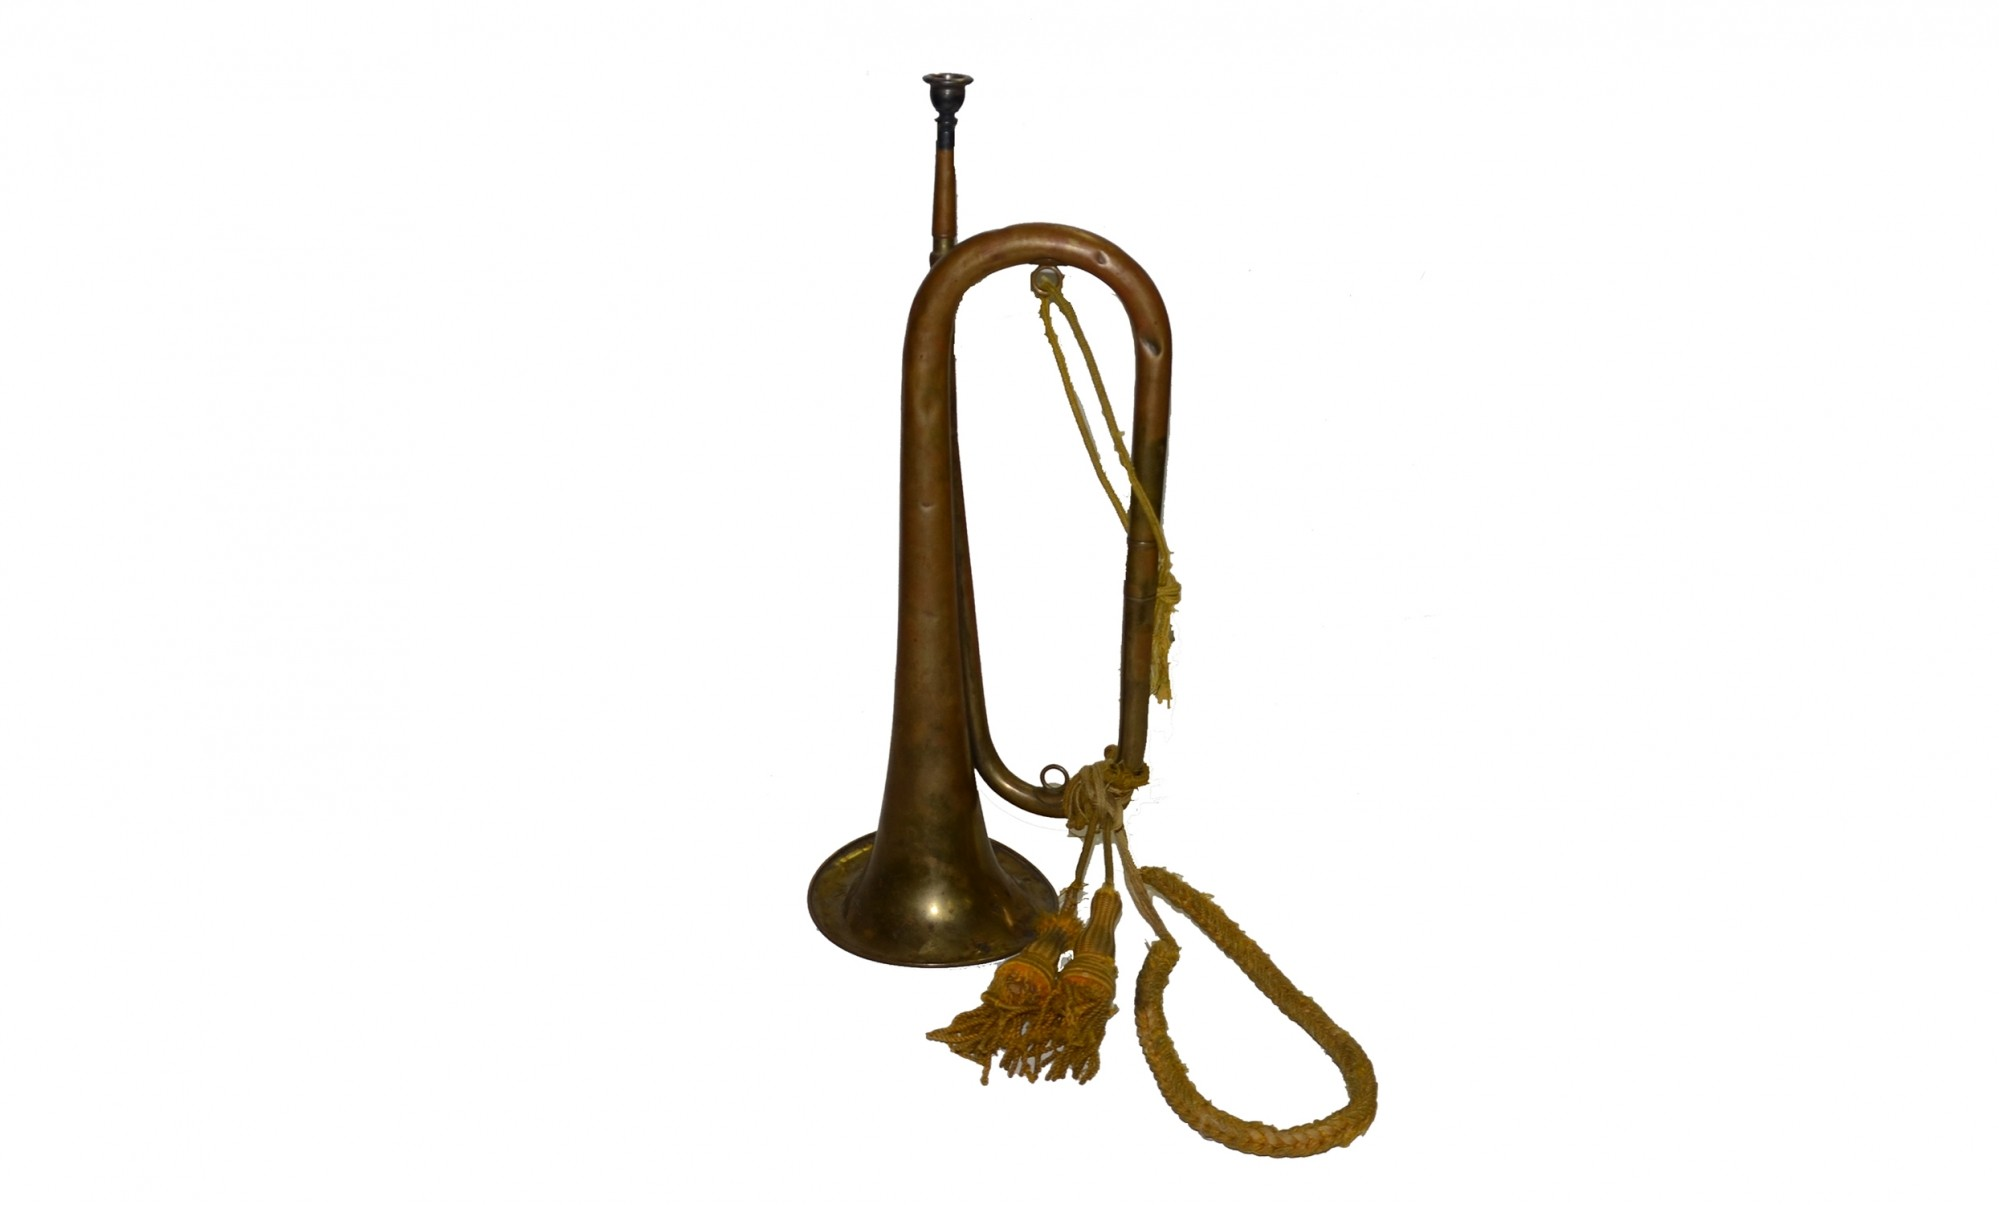 CIVIL WAR ERA IMPORTED BUGLE WITH CAVALRY CORD